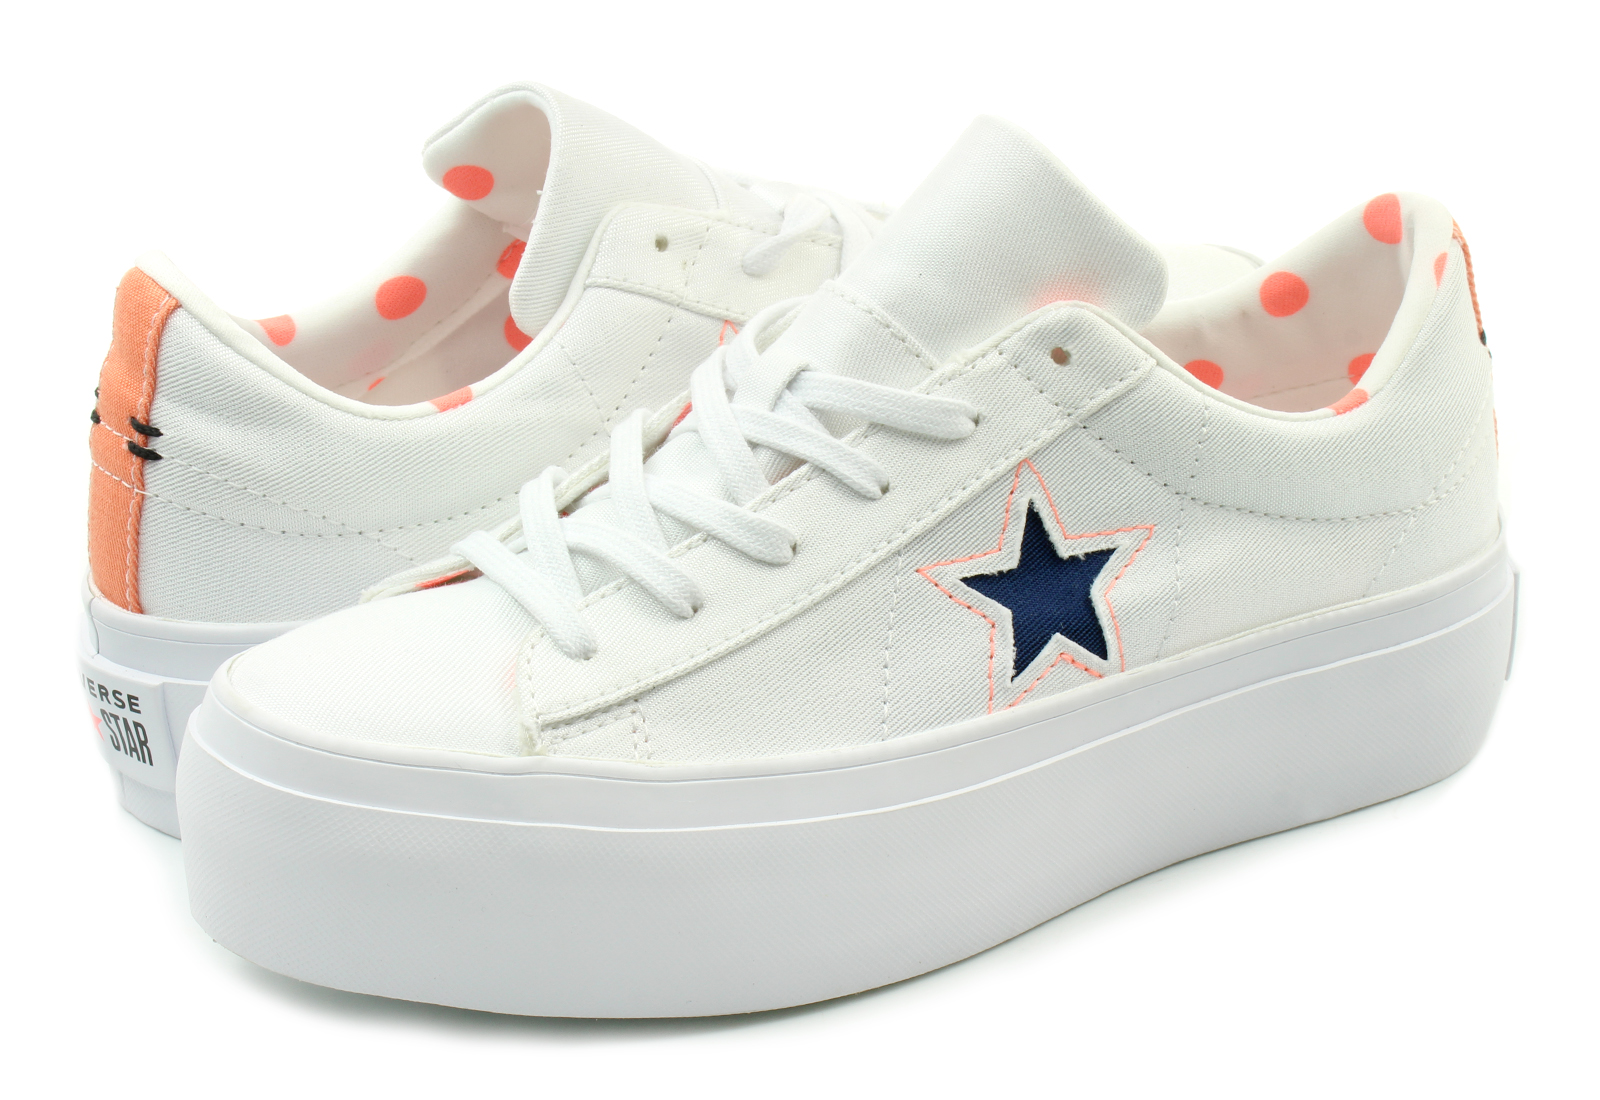 87163cc1323a9 Converse Shoes - One Star Platform - 560700C - Online shop for ...